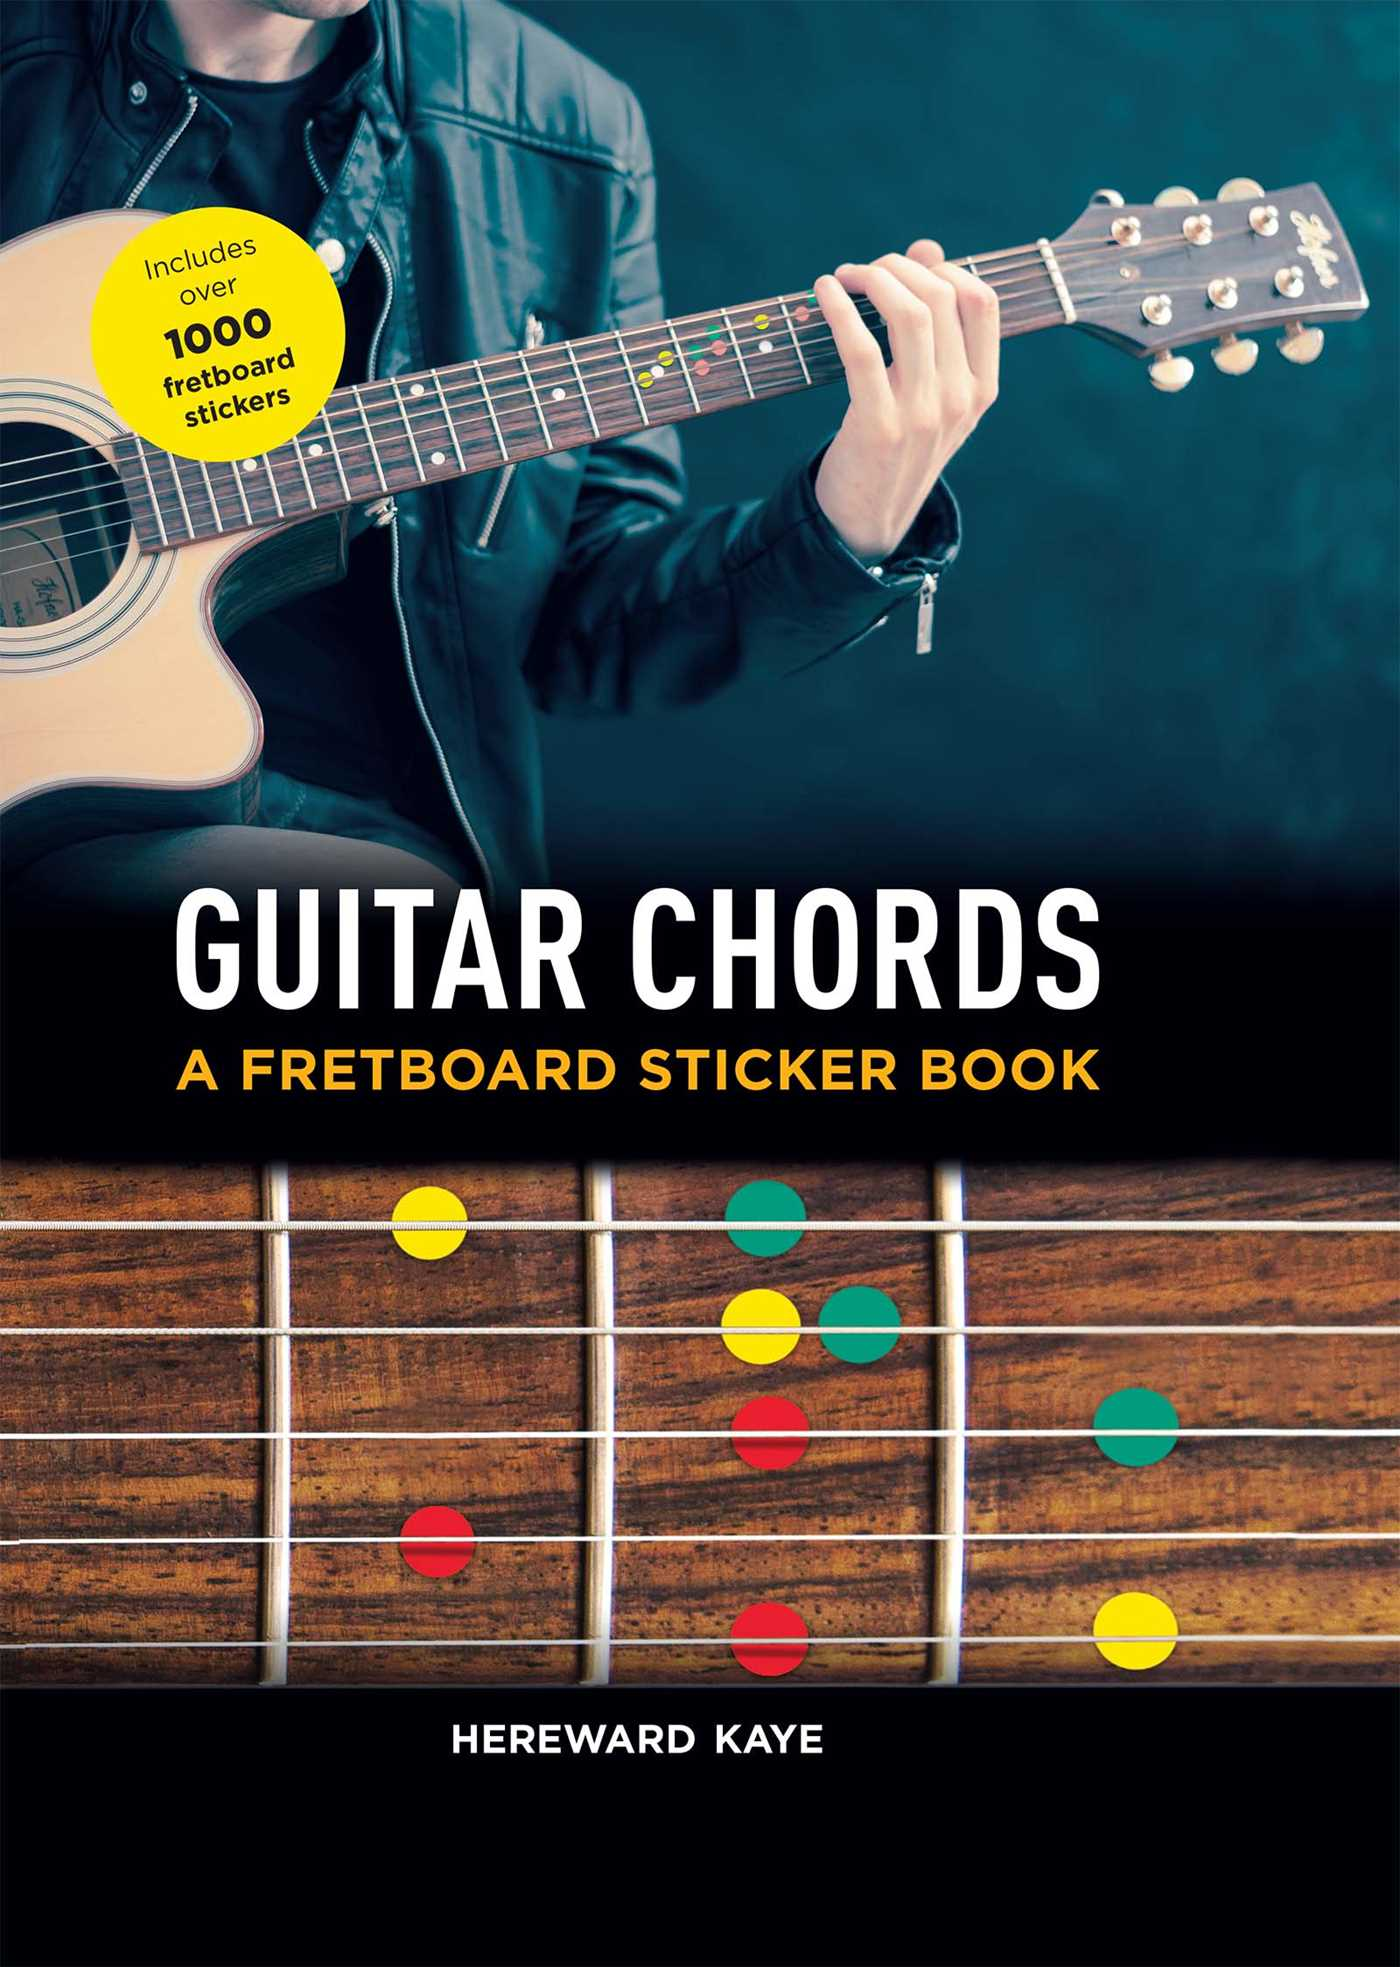 Guitar Chords A Fretboard Sticker Book Book By Hereward Kaye